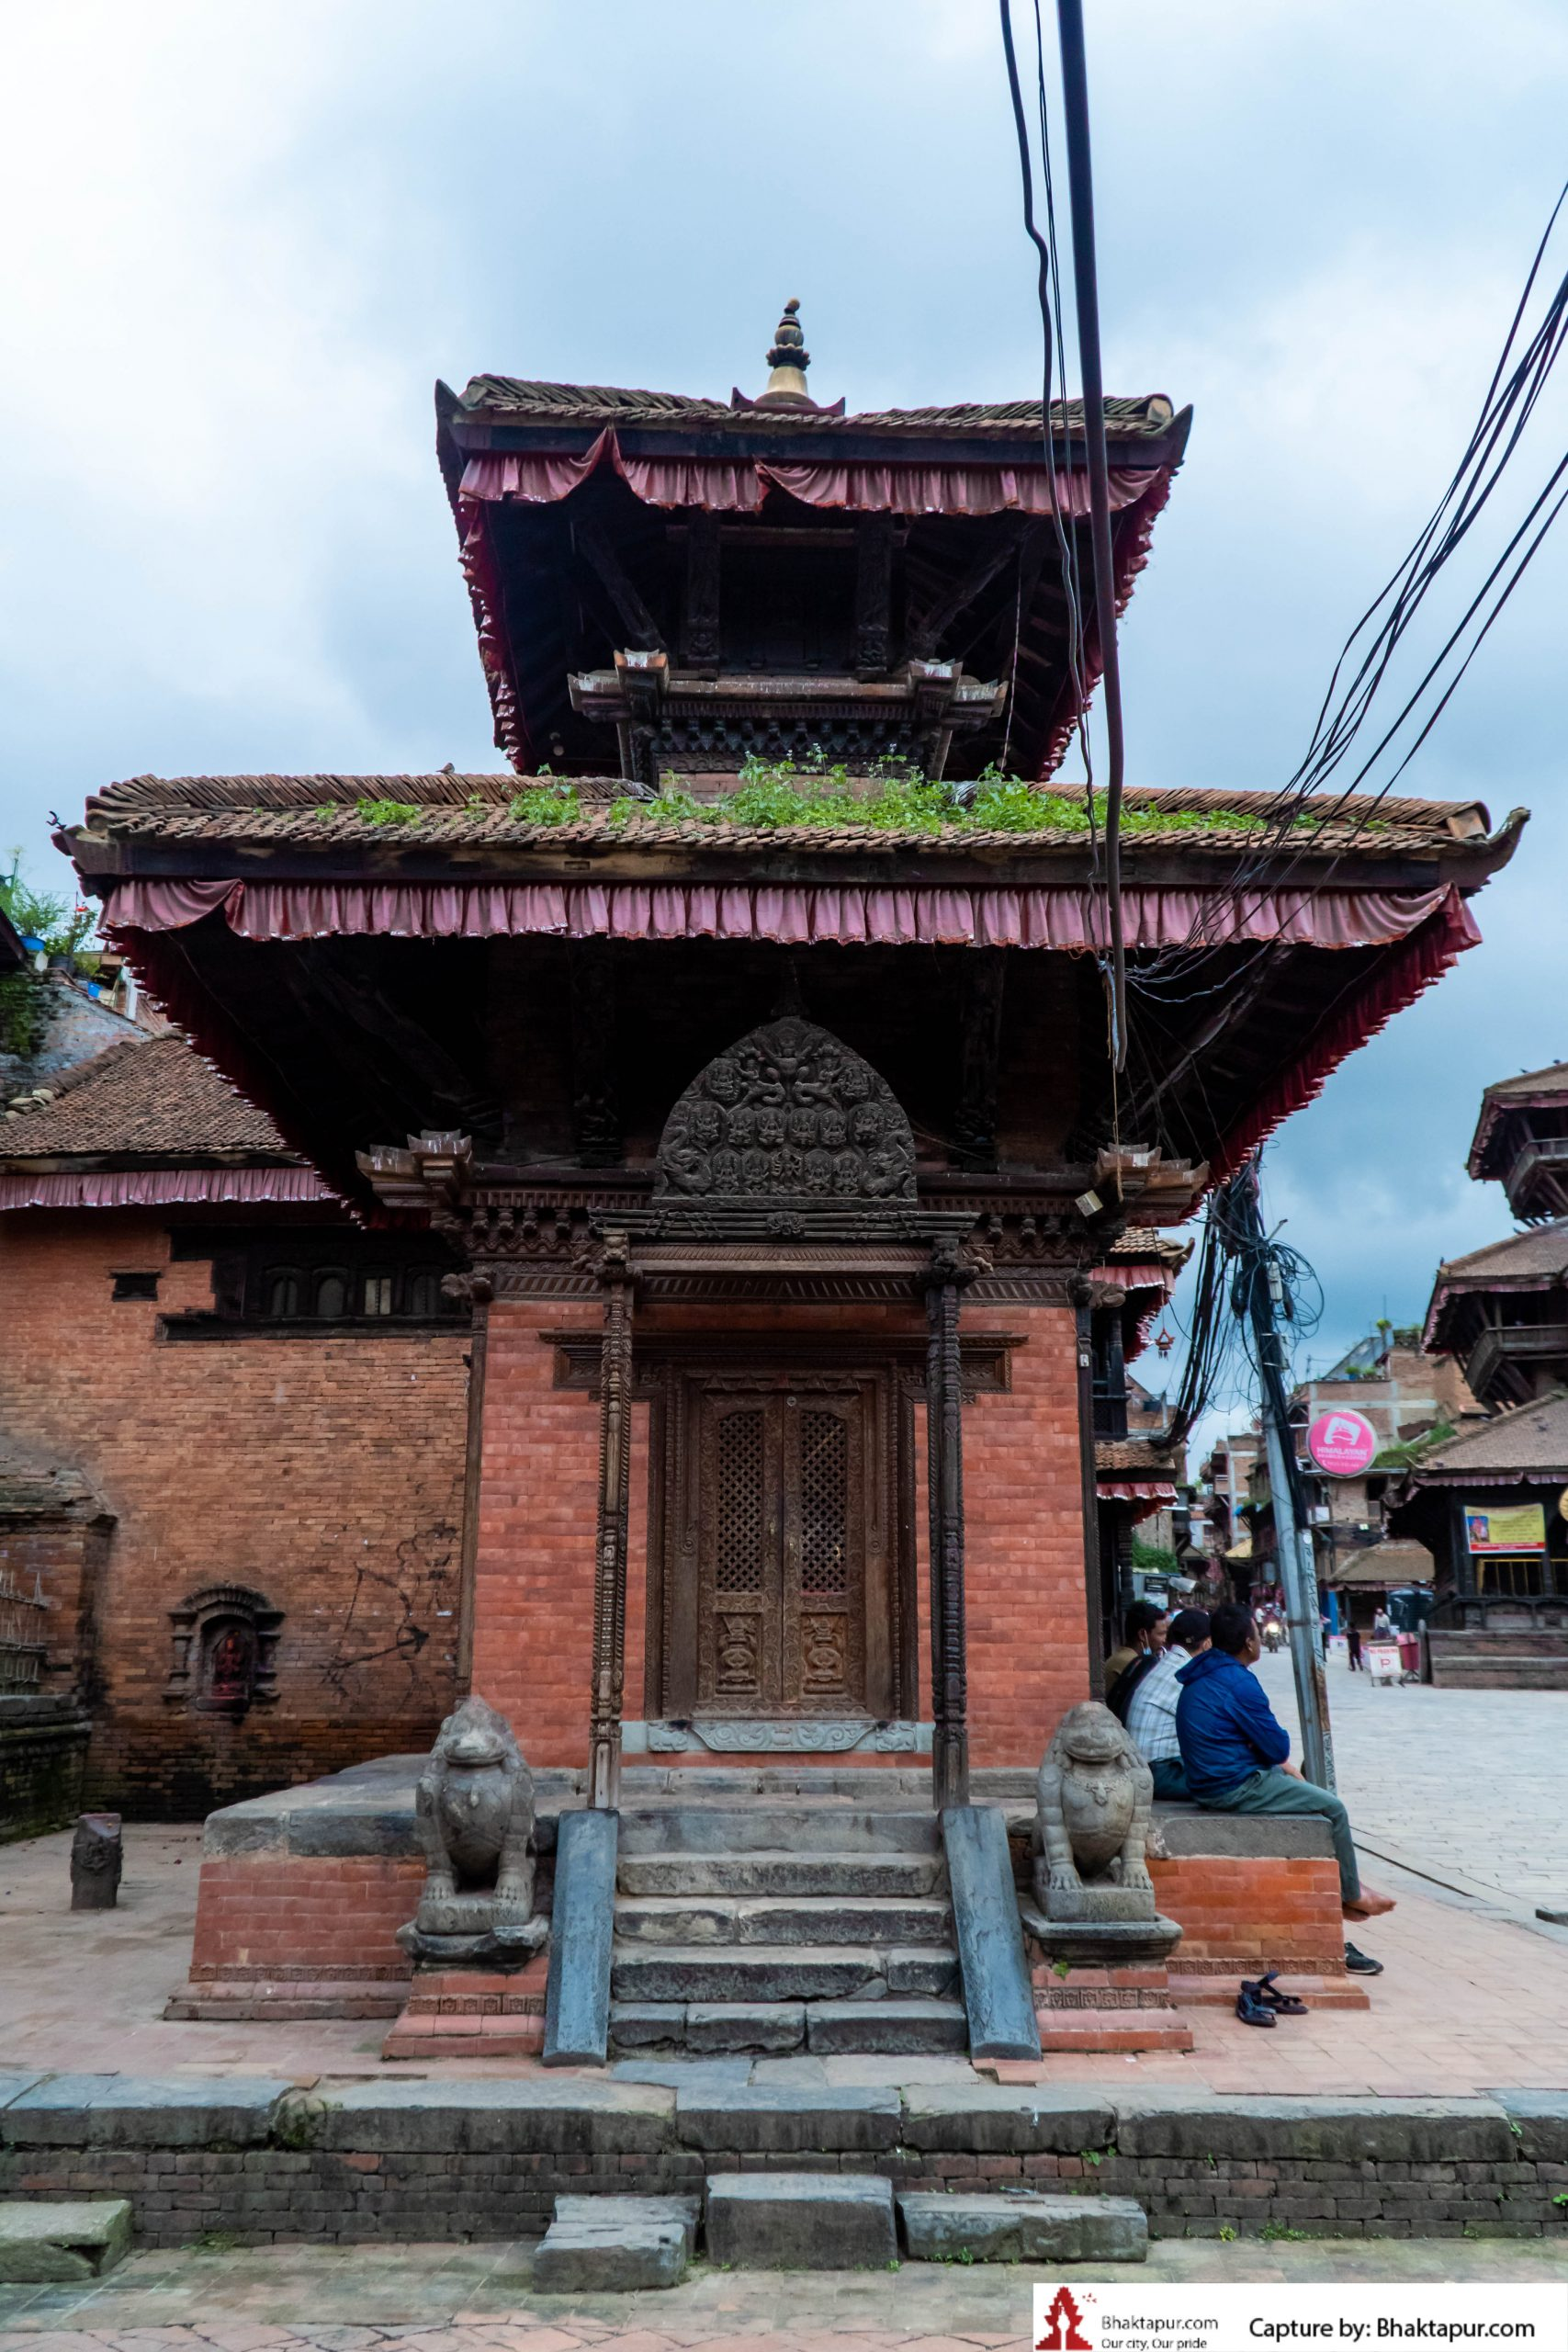 https://www.bhaktapur.com/wp-content/uploads/2021/08/erotic-carving-28-of-137-scaled.jpg